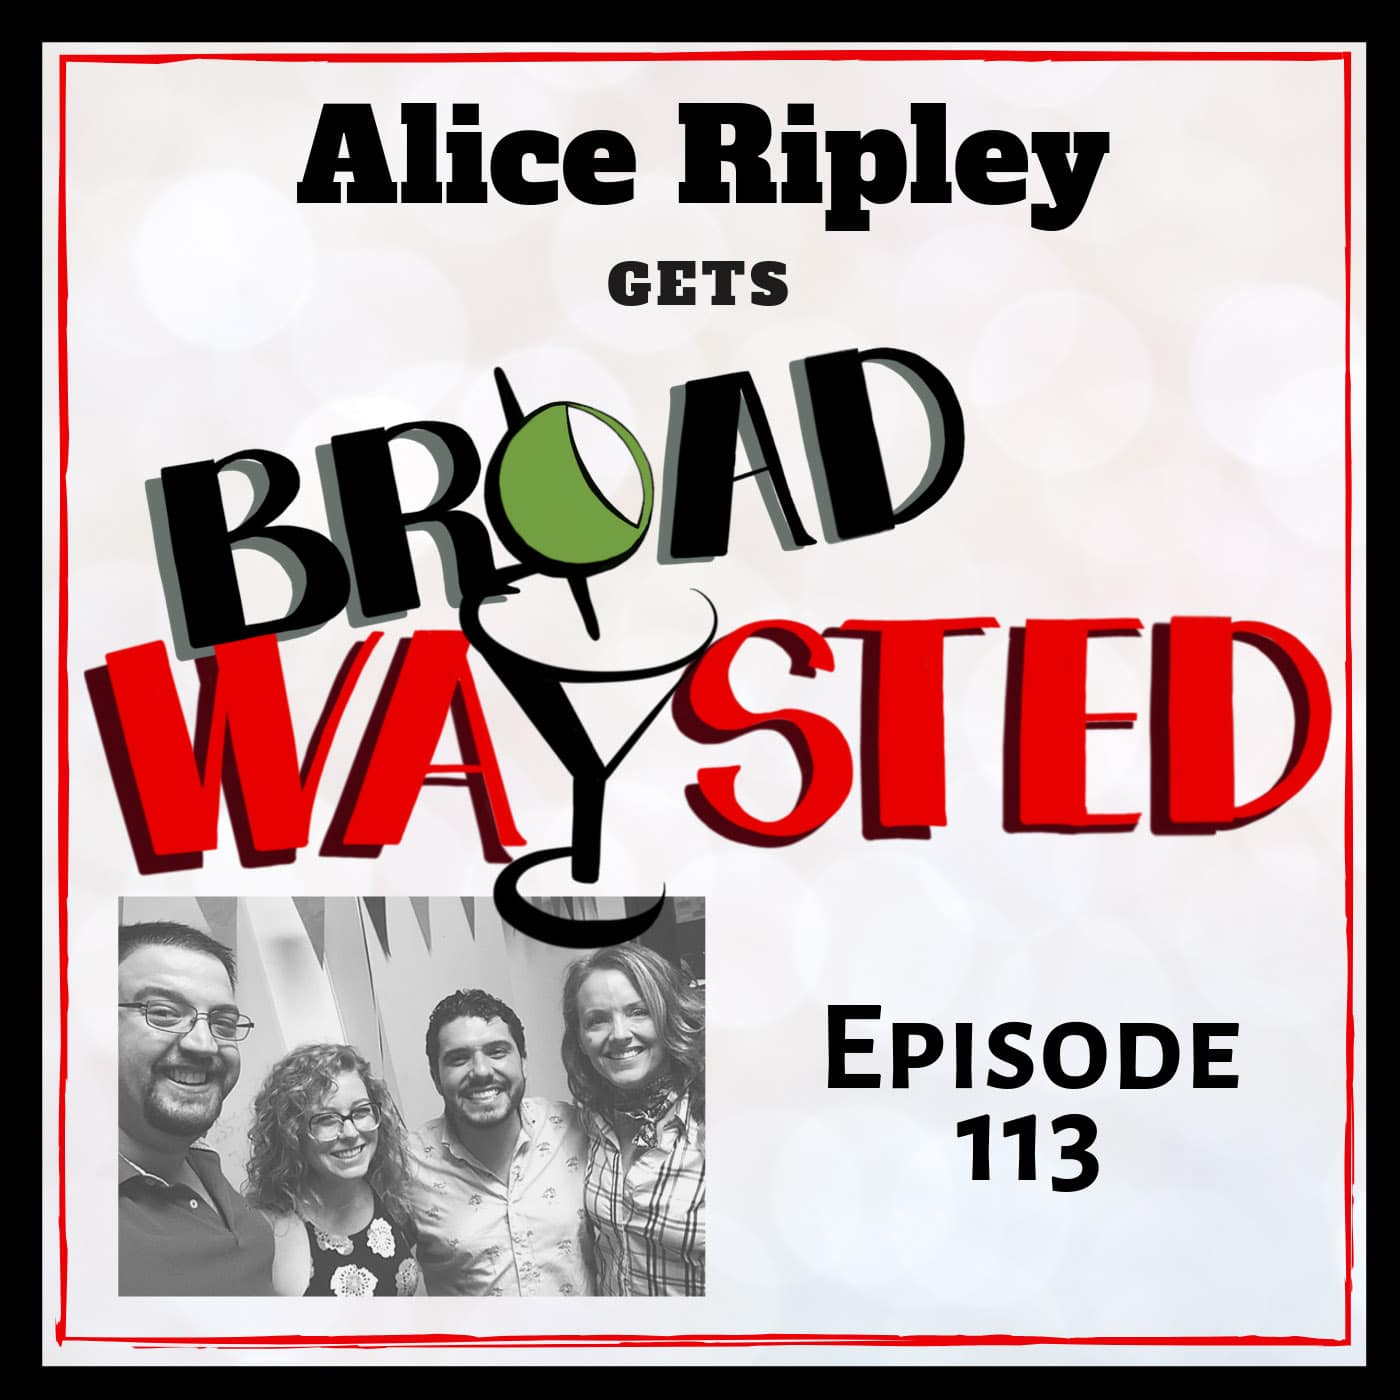 Broadwaysted Ep 113 Alice Ripley